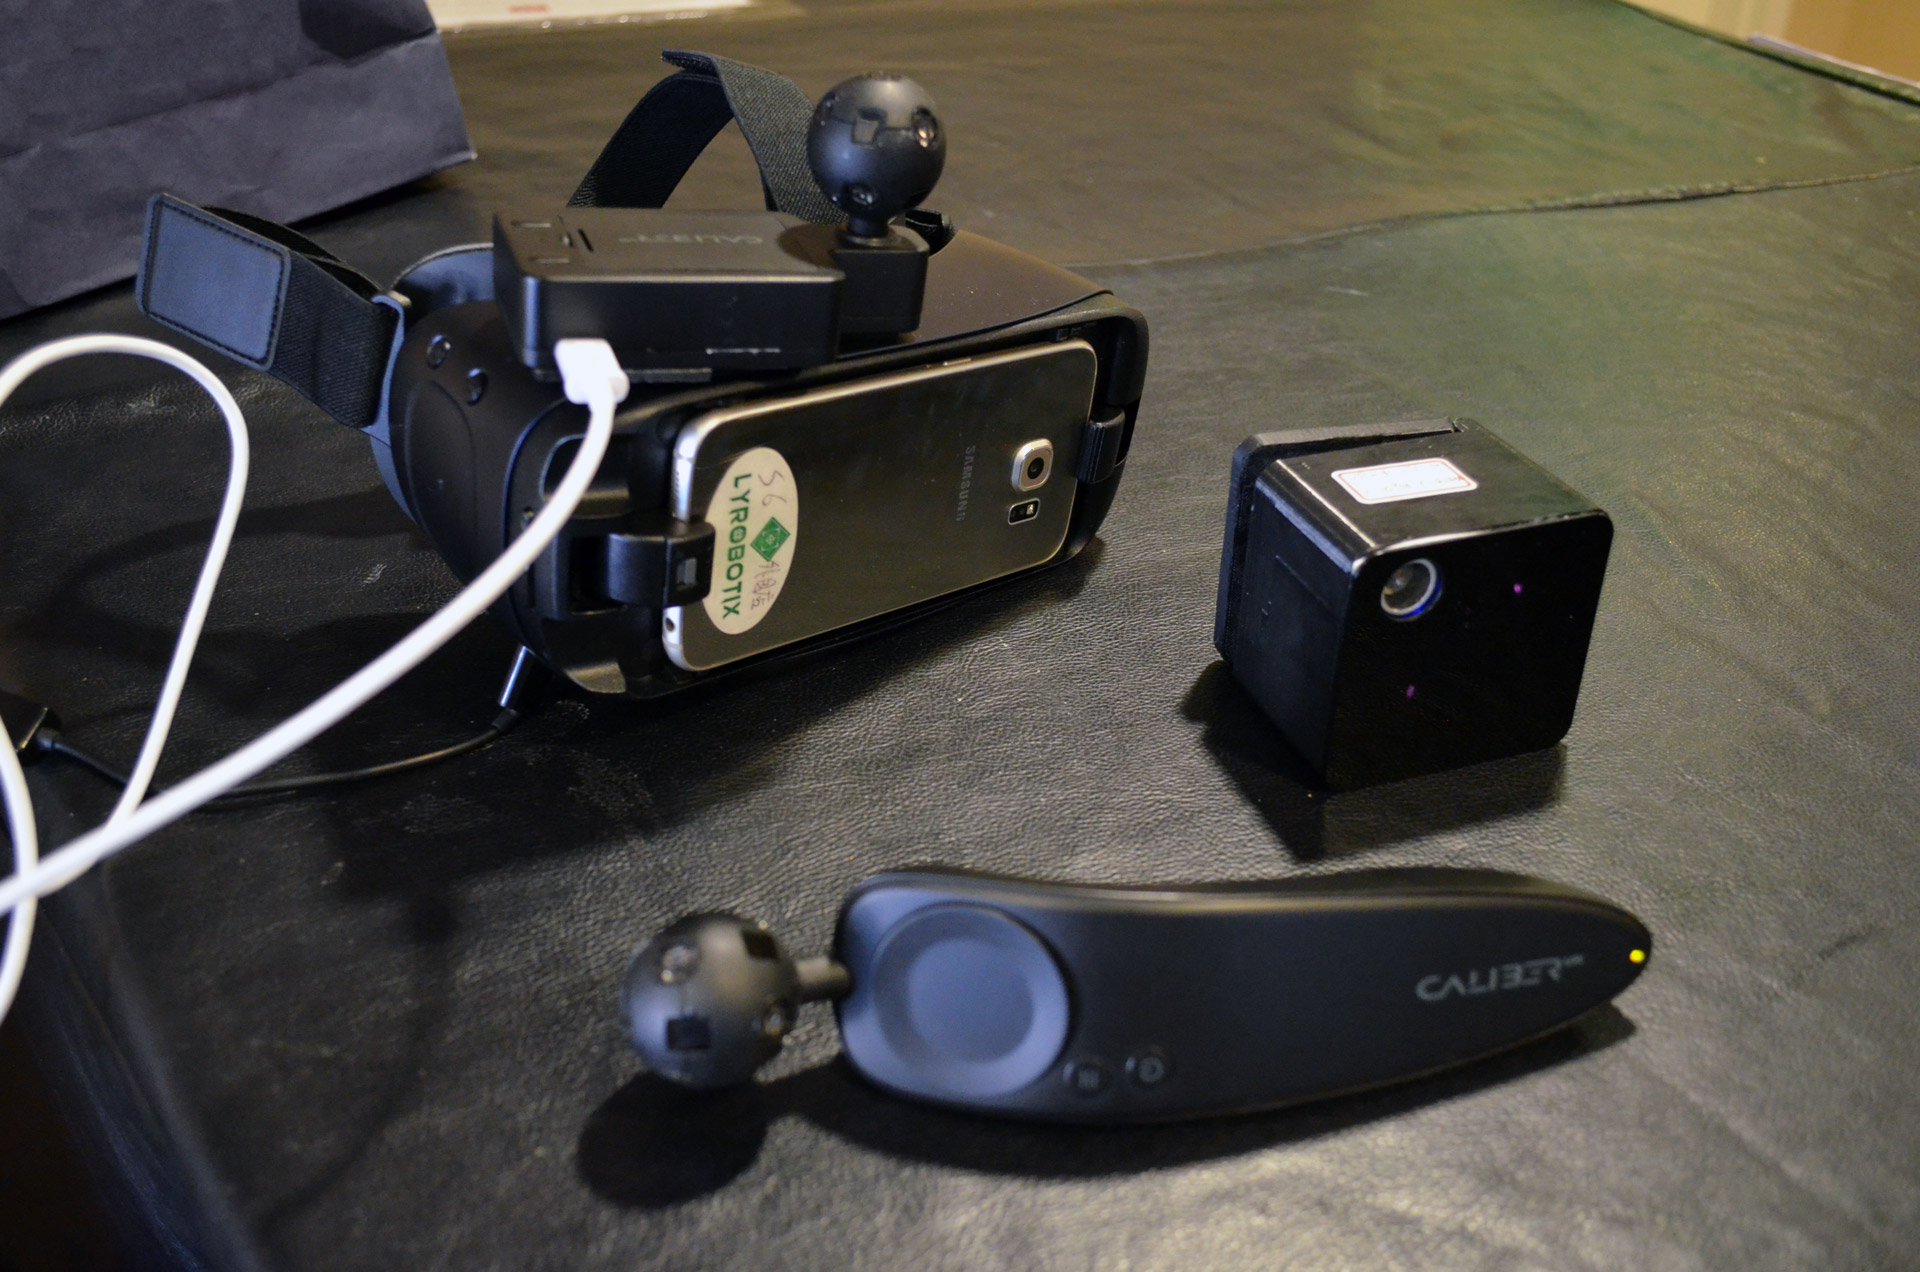 58abf5b77ca6 Lyrobotix Merges Ultrasonic and Lighthouse-like Tech for Portable  Positional VR Tracking